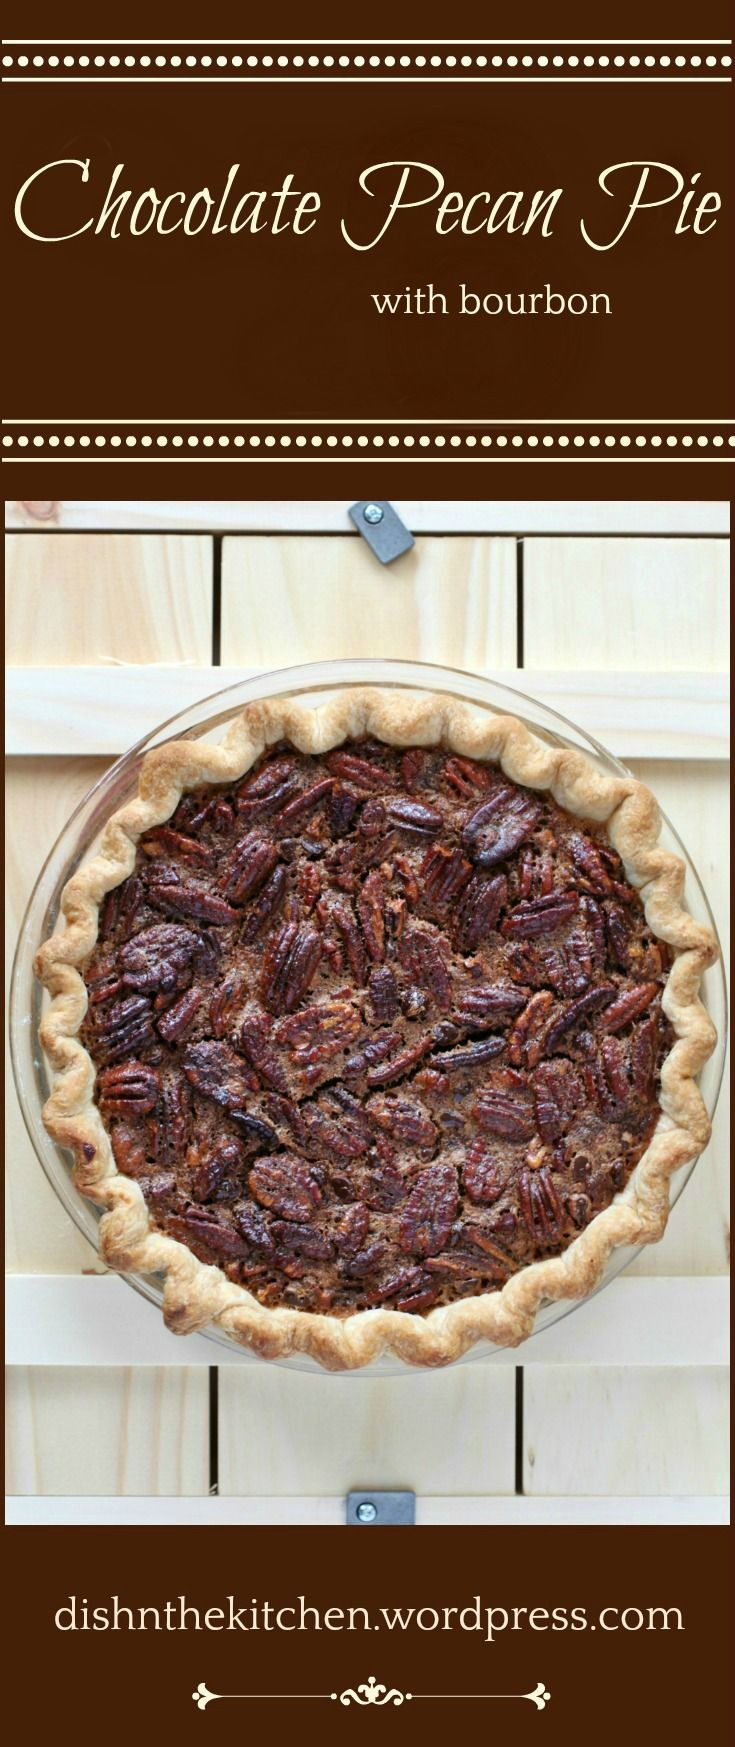 Chocolate Pecan Pie with Bourbon | Dish 'n' the kitchen